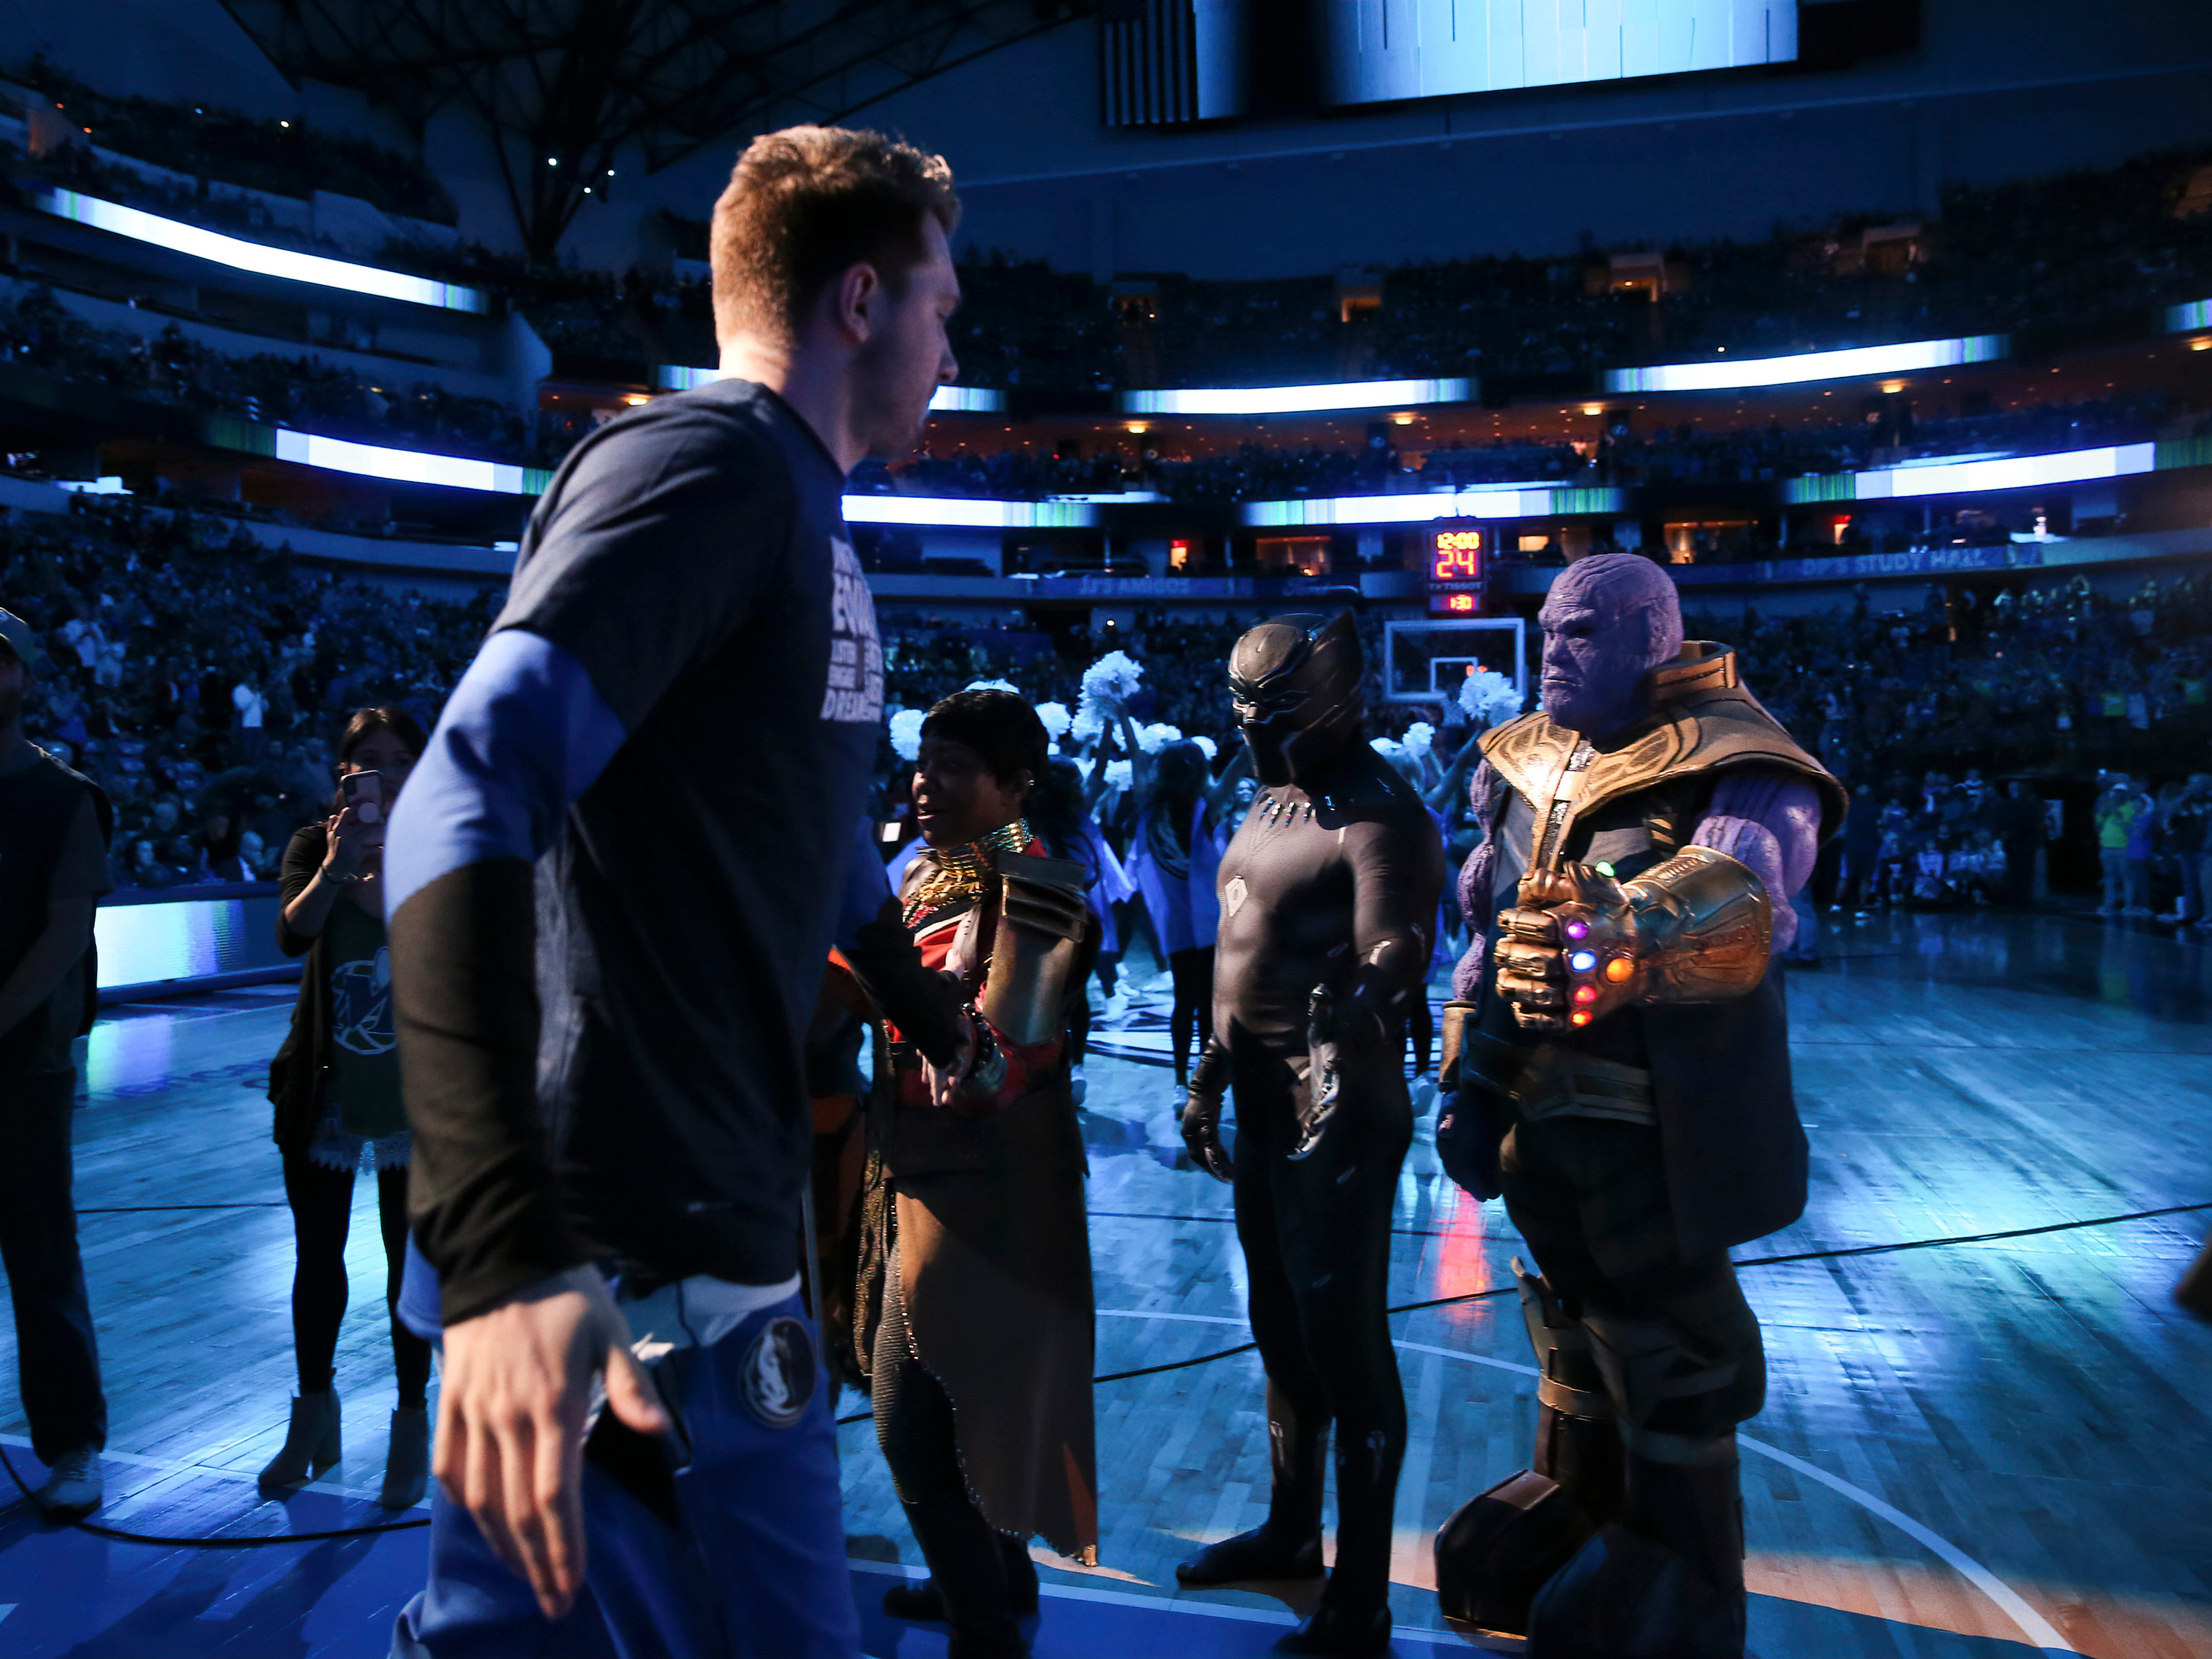 Feb 10: Dallas Mavericks forward Luka Doncic is greeted by comic book character Thanos on Superhero Day before the game against the Portland Trail Blazers at American Airlines Center.